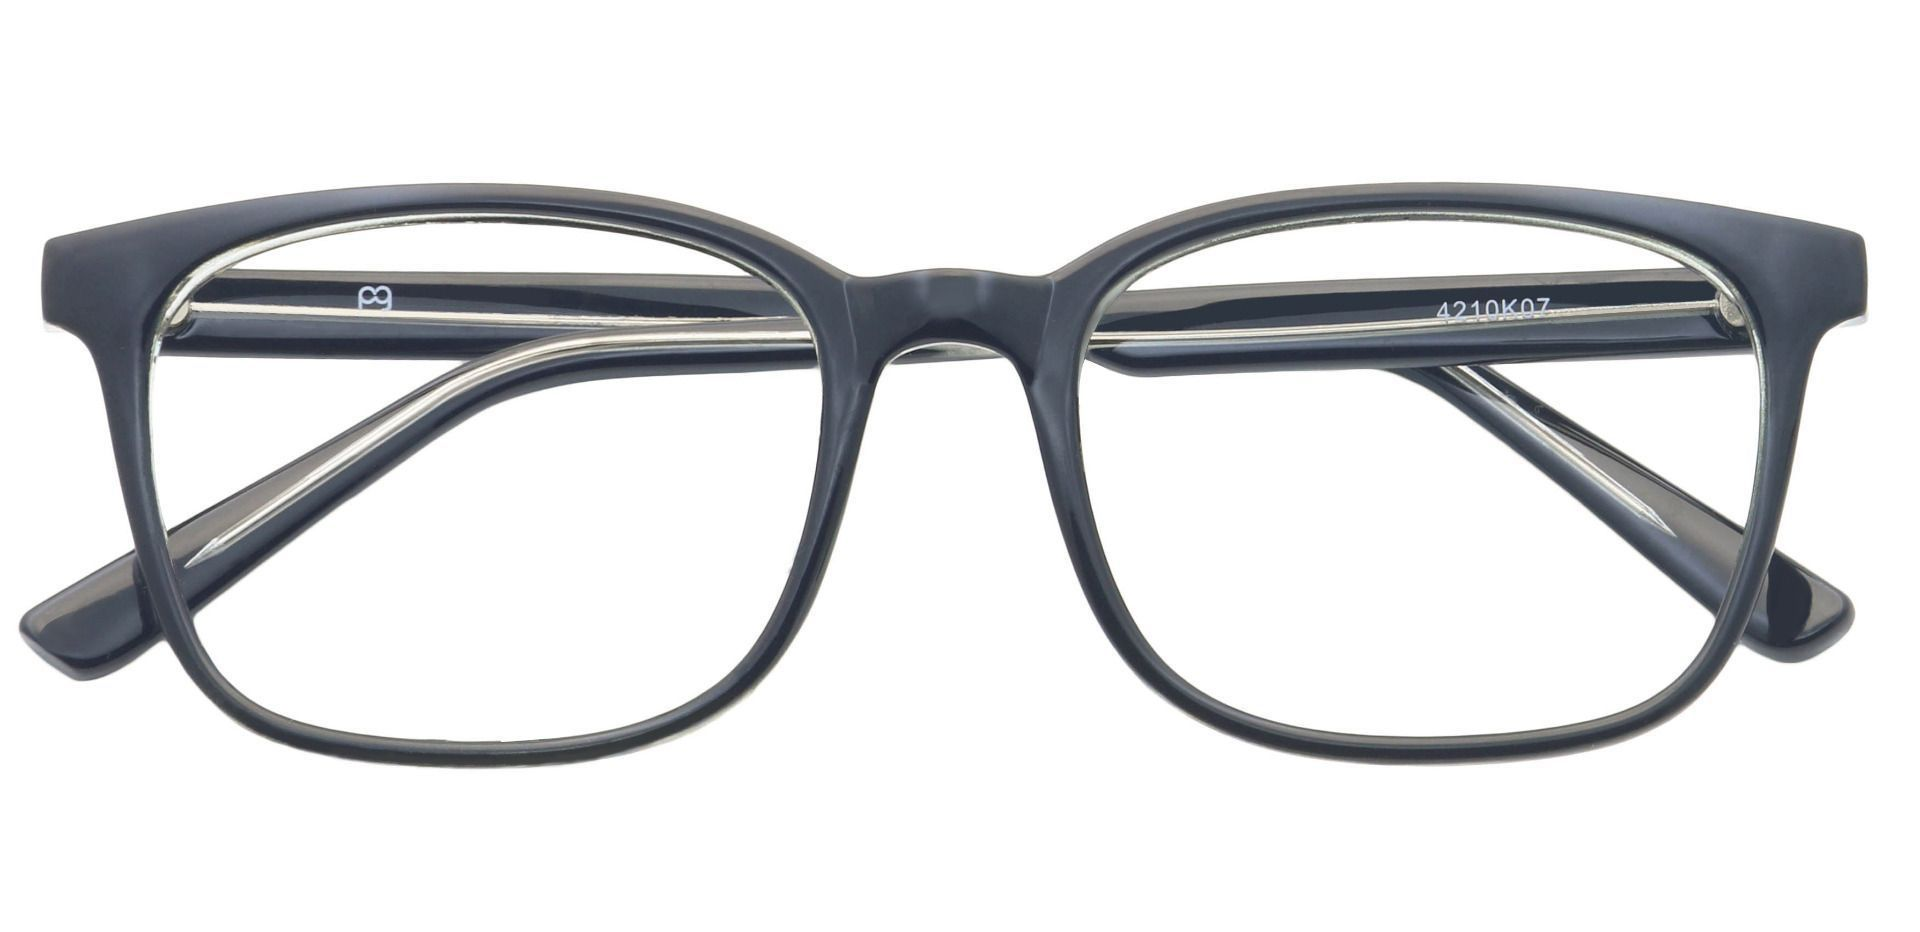 Windsor Rectangle Progressive Glasses - Shiny Black/crystal